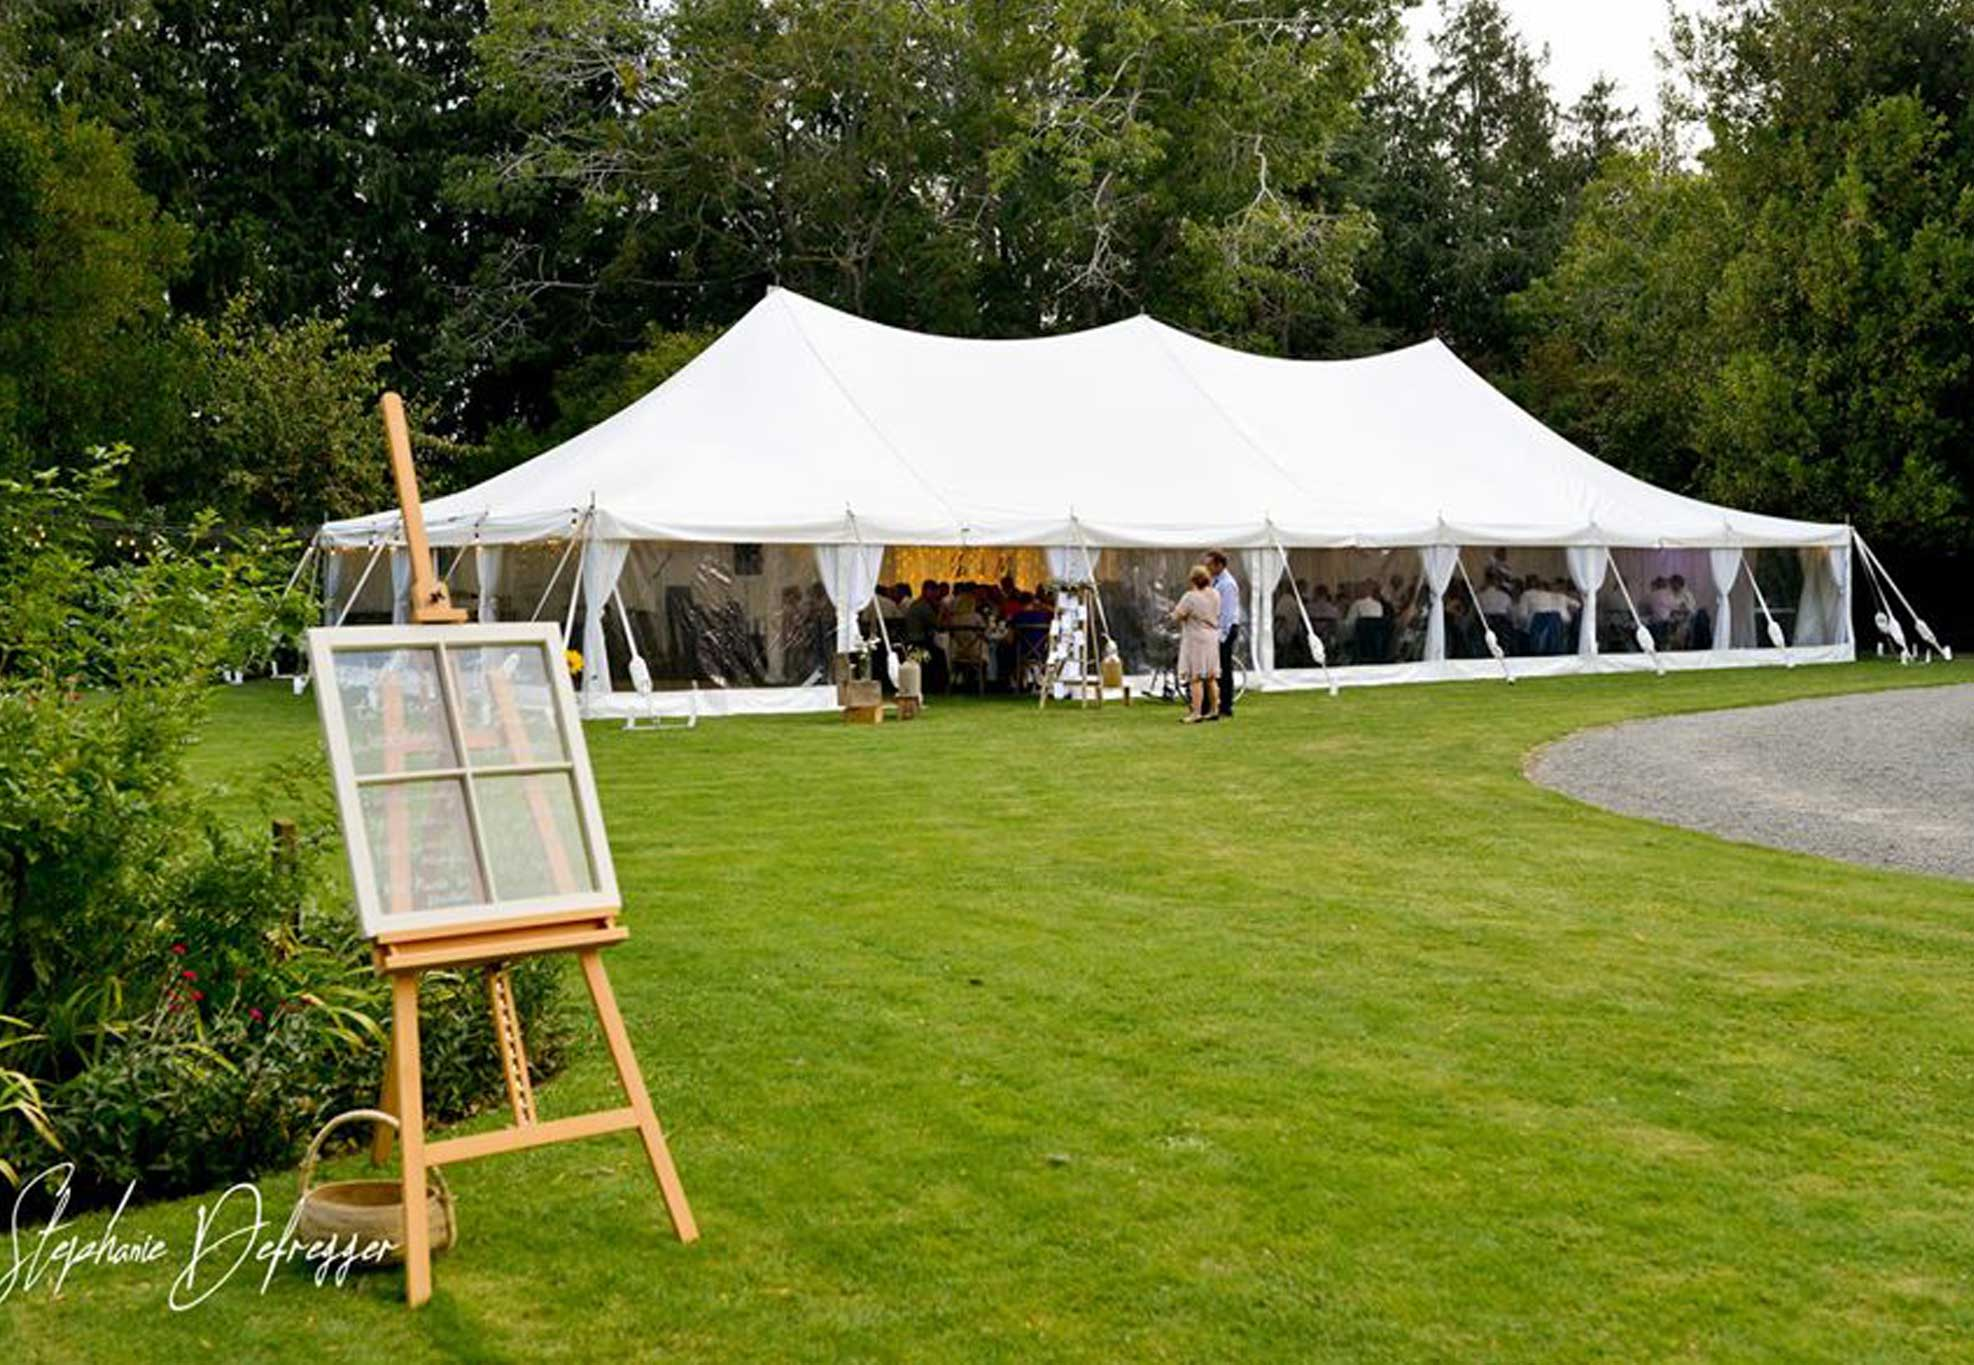 silk-estate-marquee-weddings-and-events-styling-and-hire-decor-signs-4